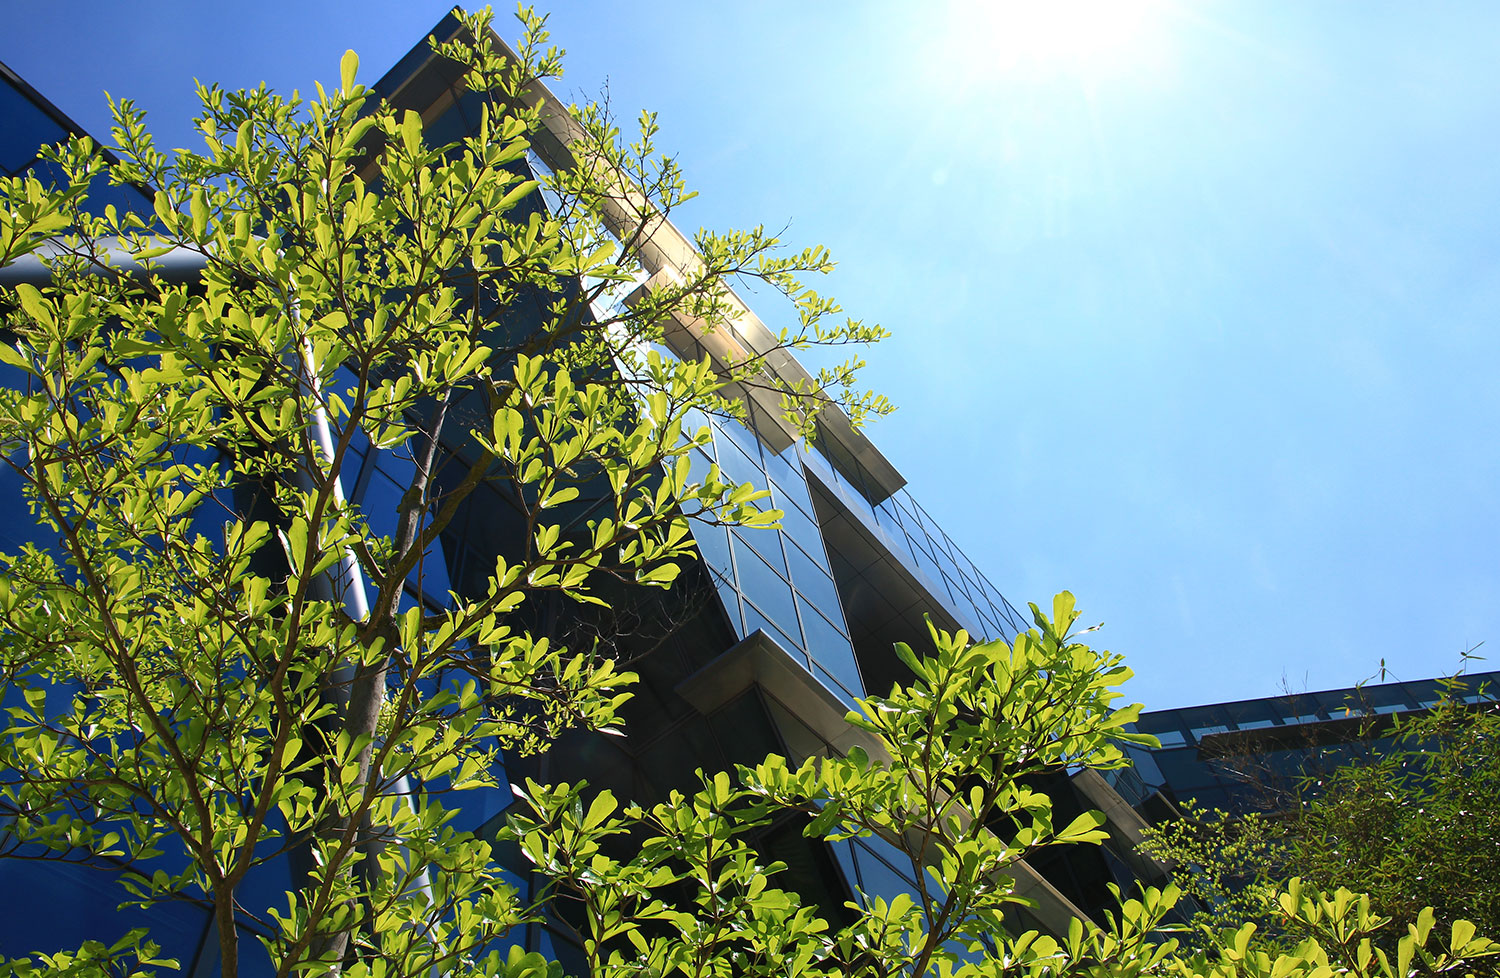 The increasing demand for zero carbon buildings